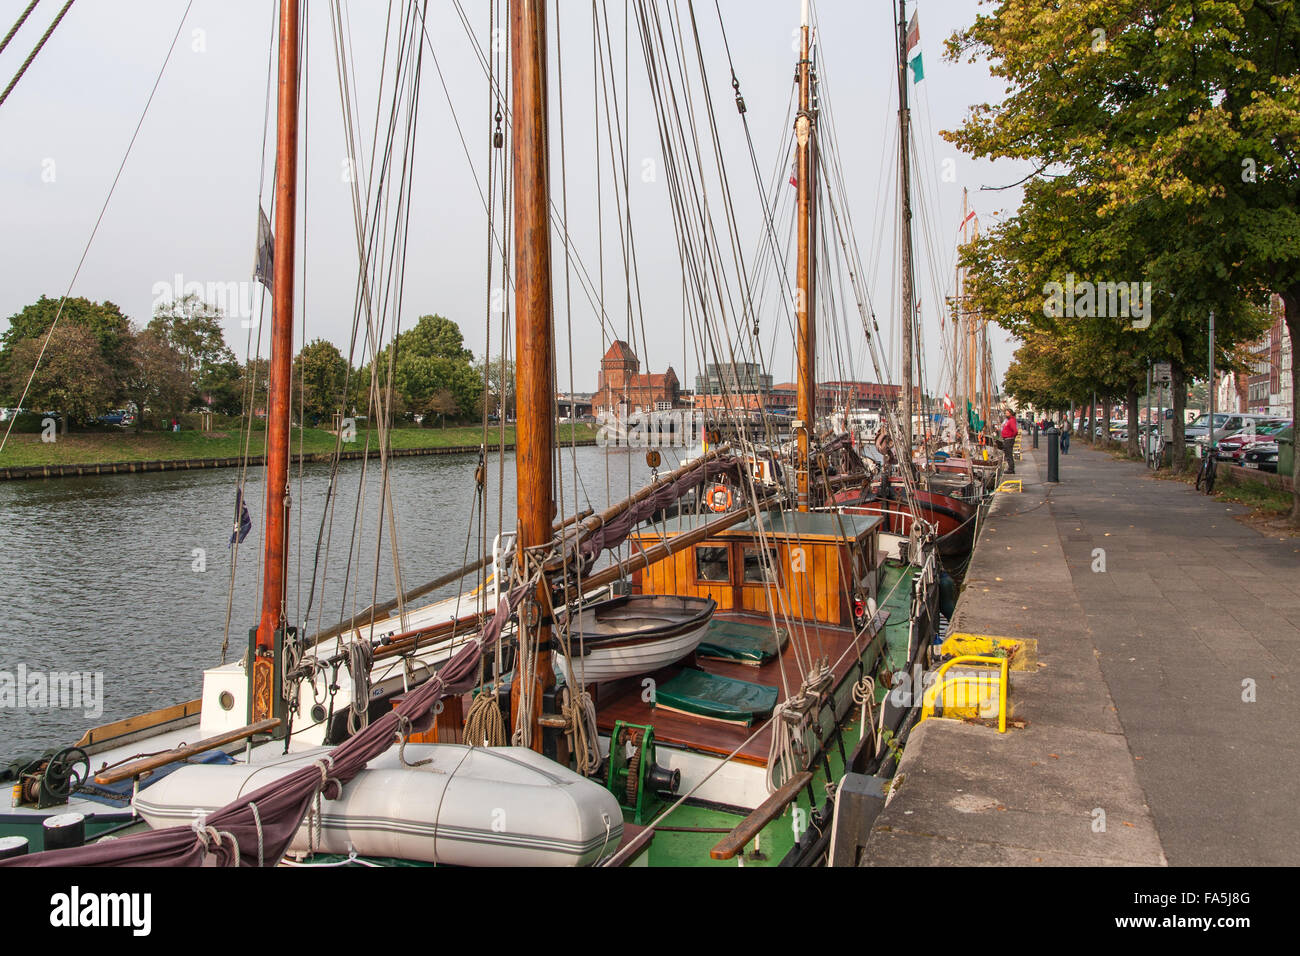 Boats on Trave in Lübeck - Stock Image